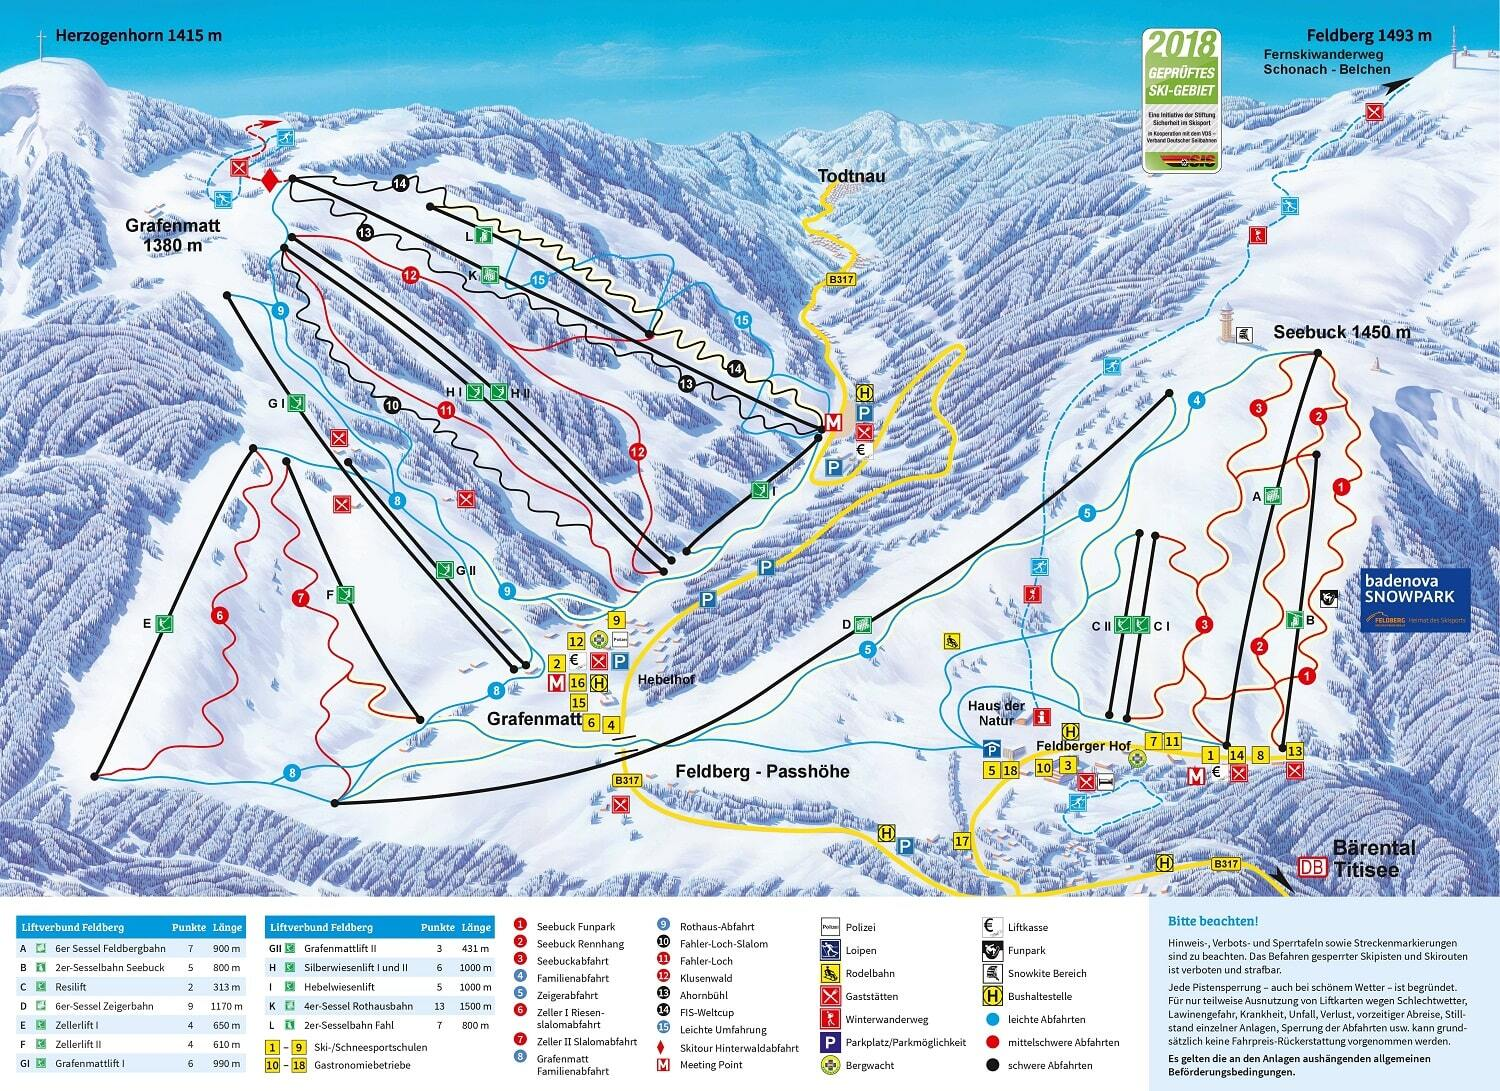 Feldberg Piste / Trail Map